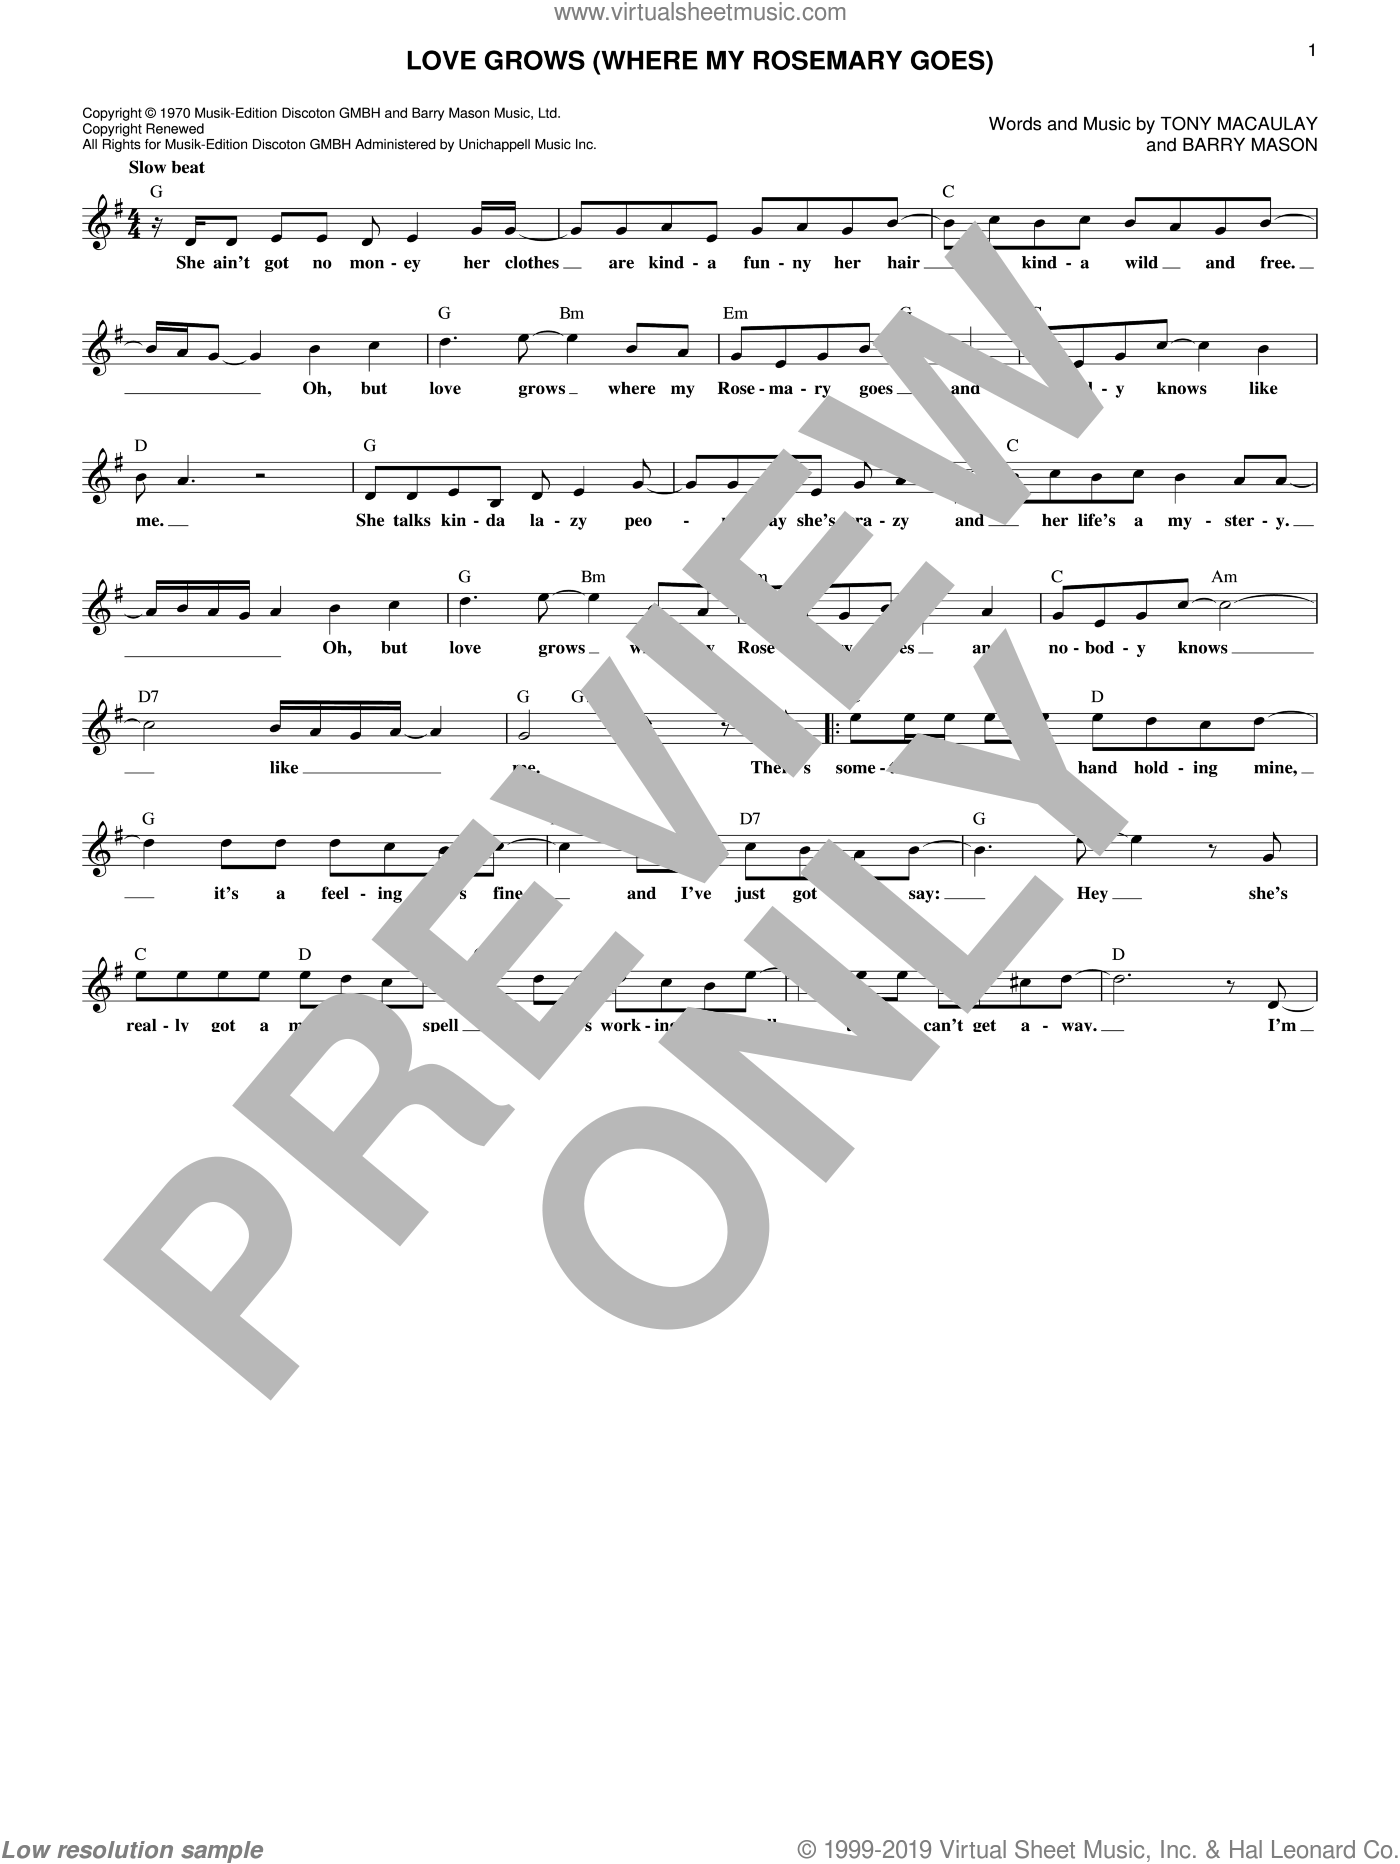 Love Grows (Where My Rosemary Goes) sheet music for voice and other instruments (fake book) by Tony MacAuley and Barry Mason. Score Image Preview.